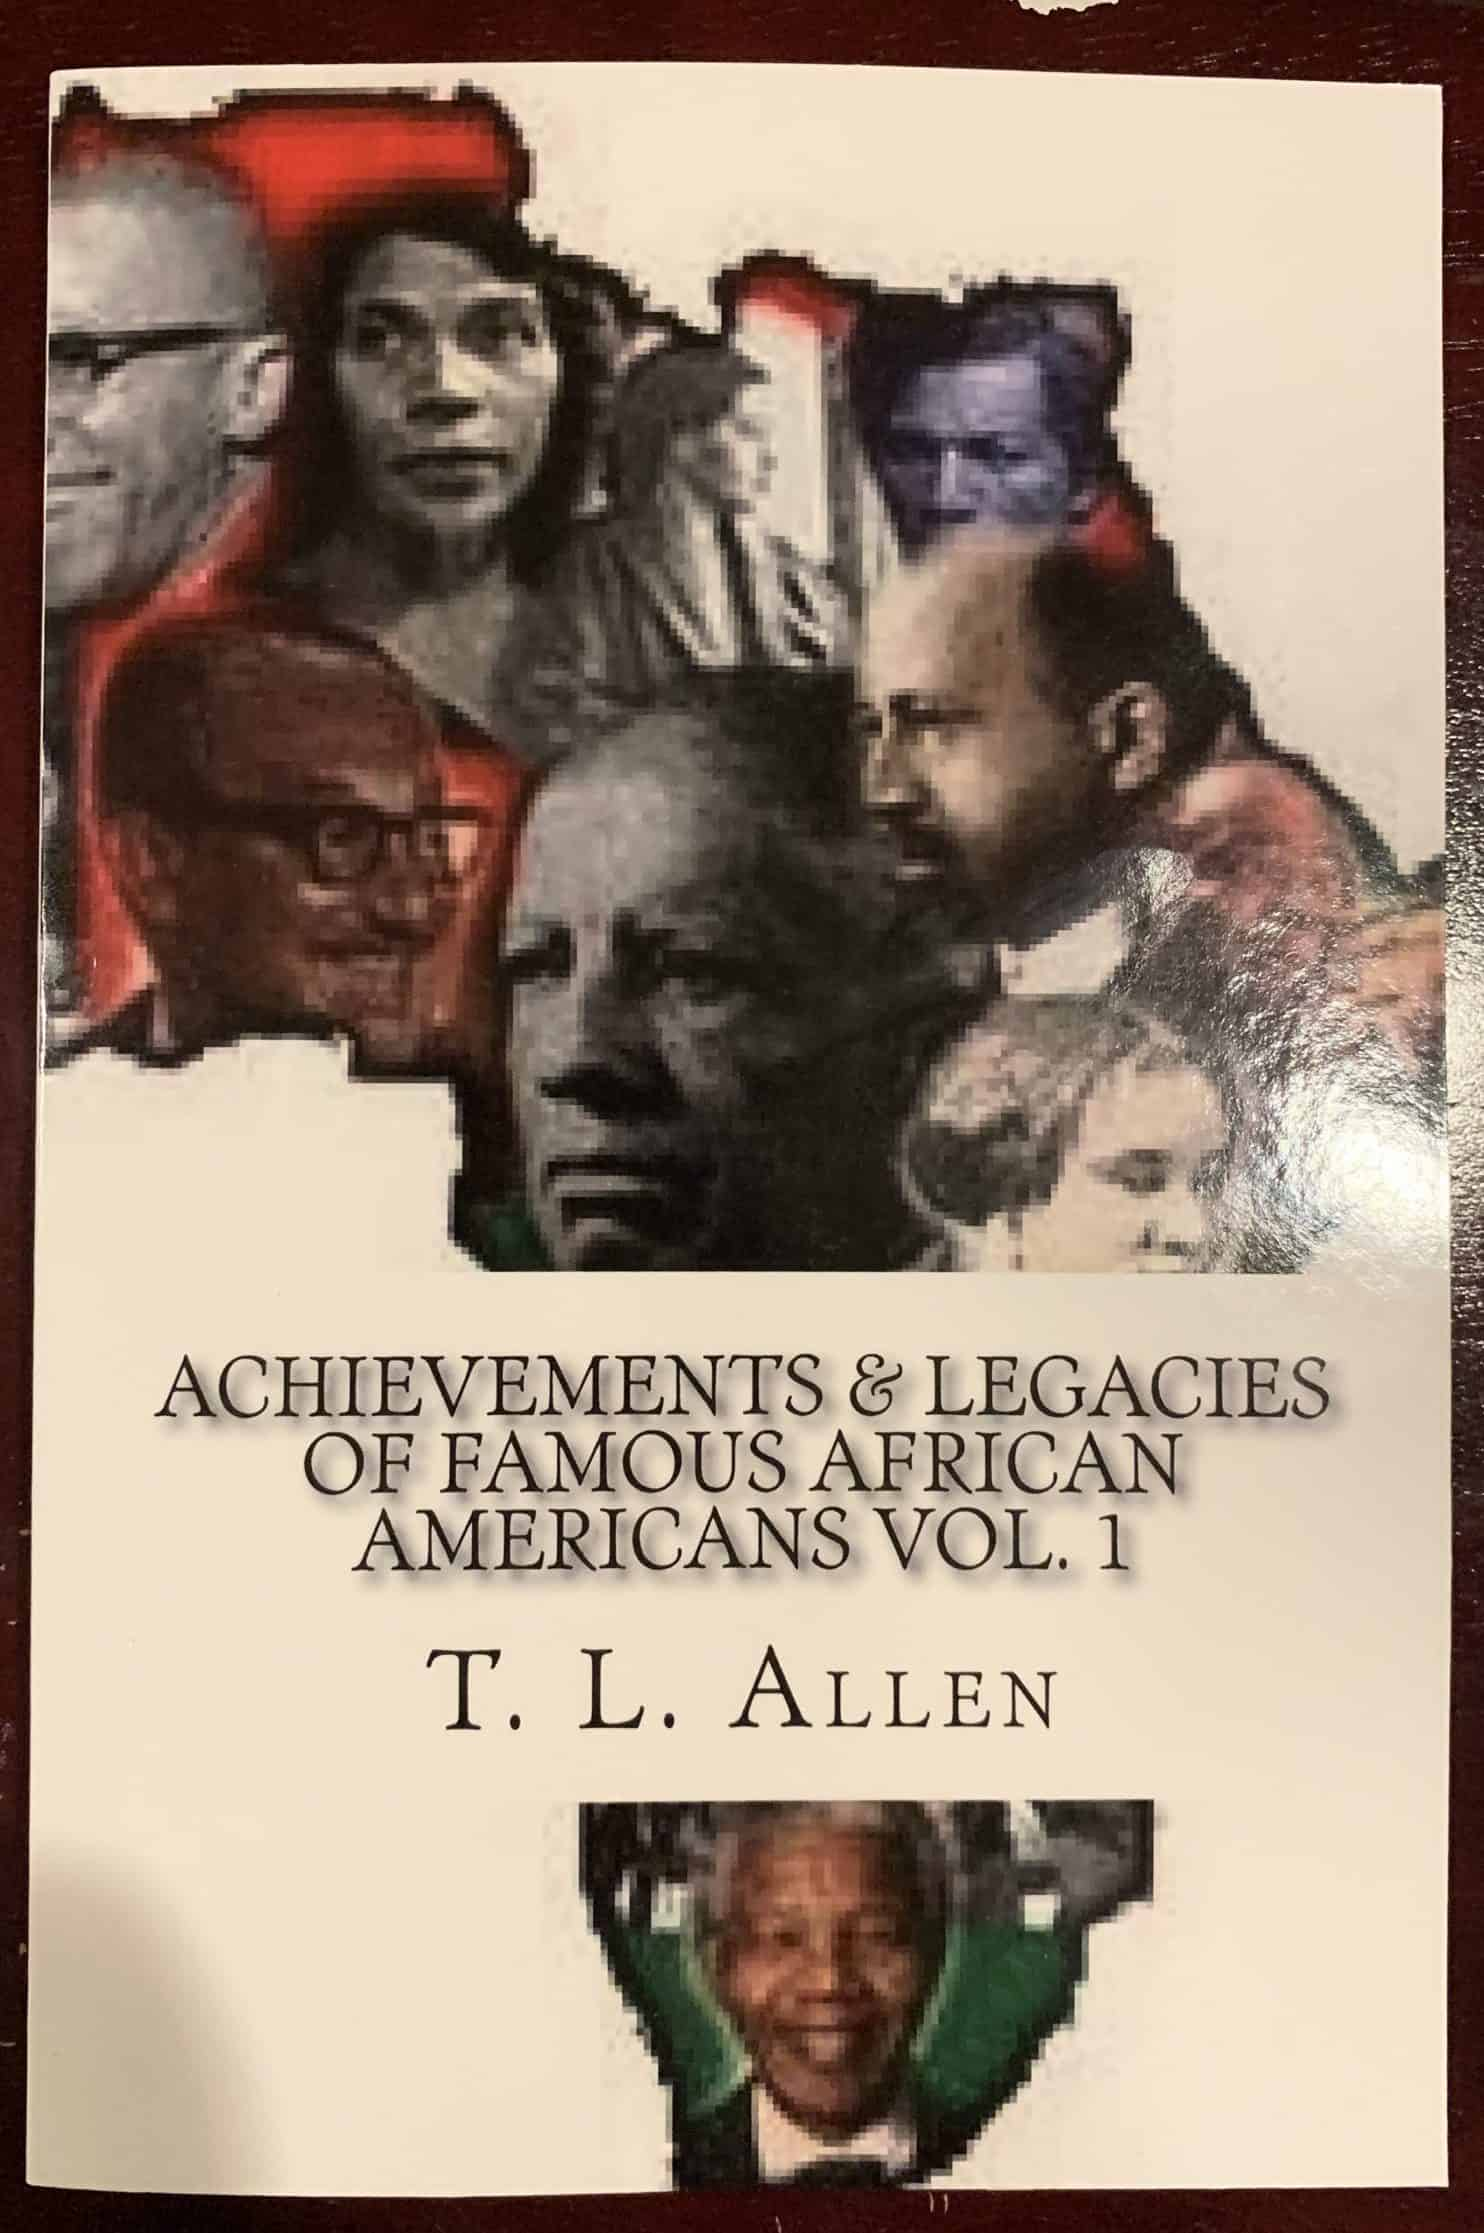 Achievements & Legacies of Famous African Americans - Vol. 1